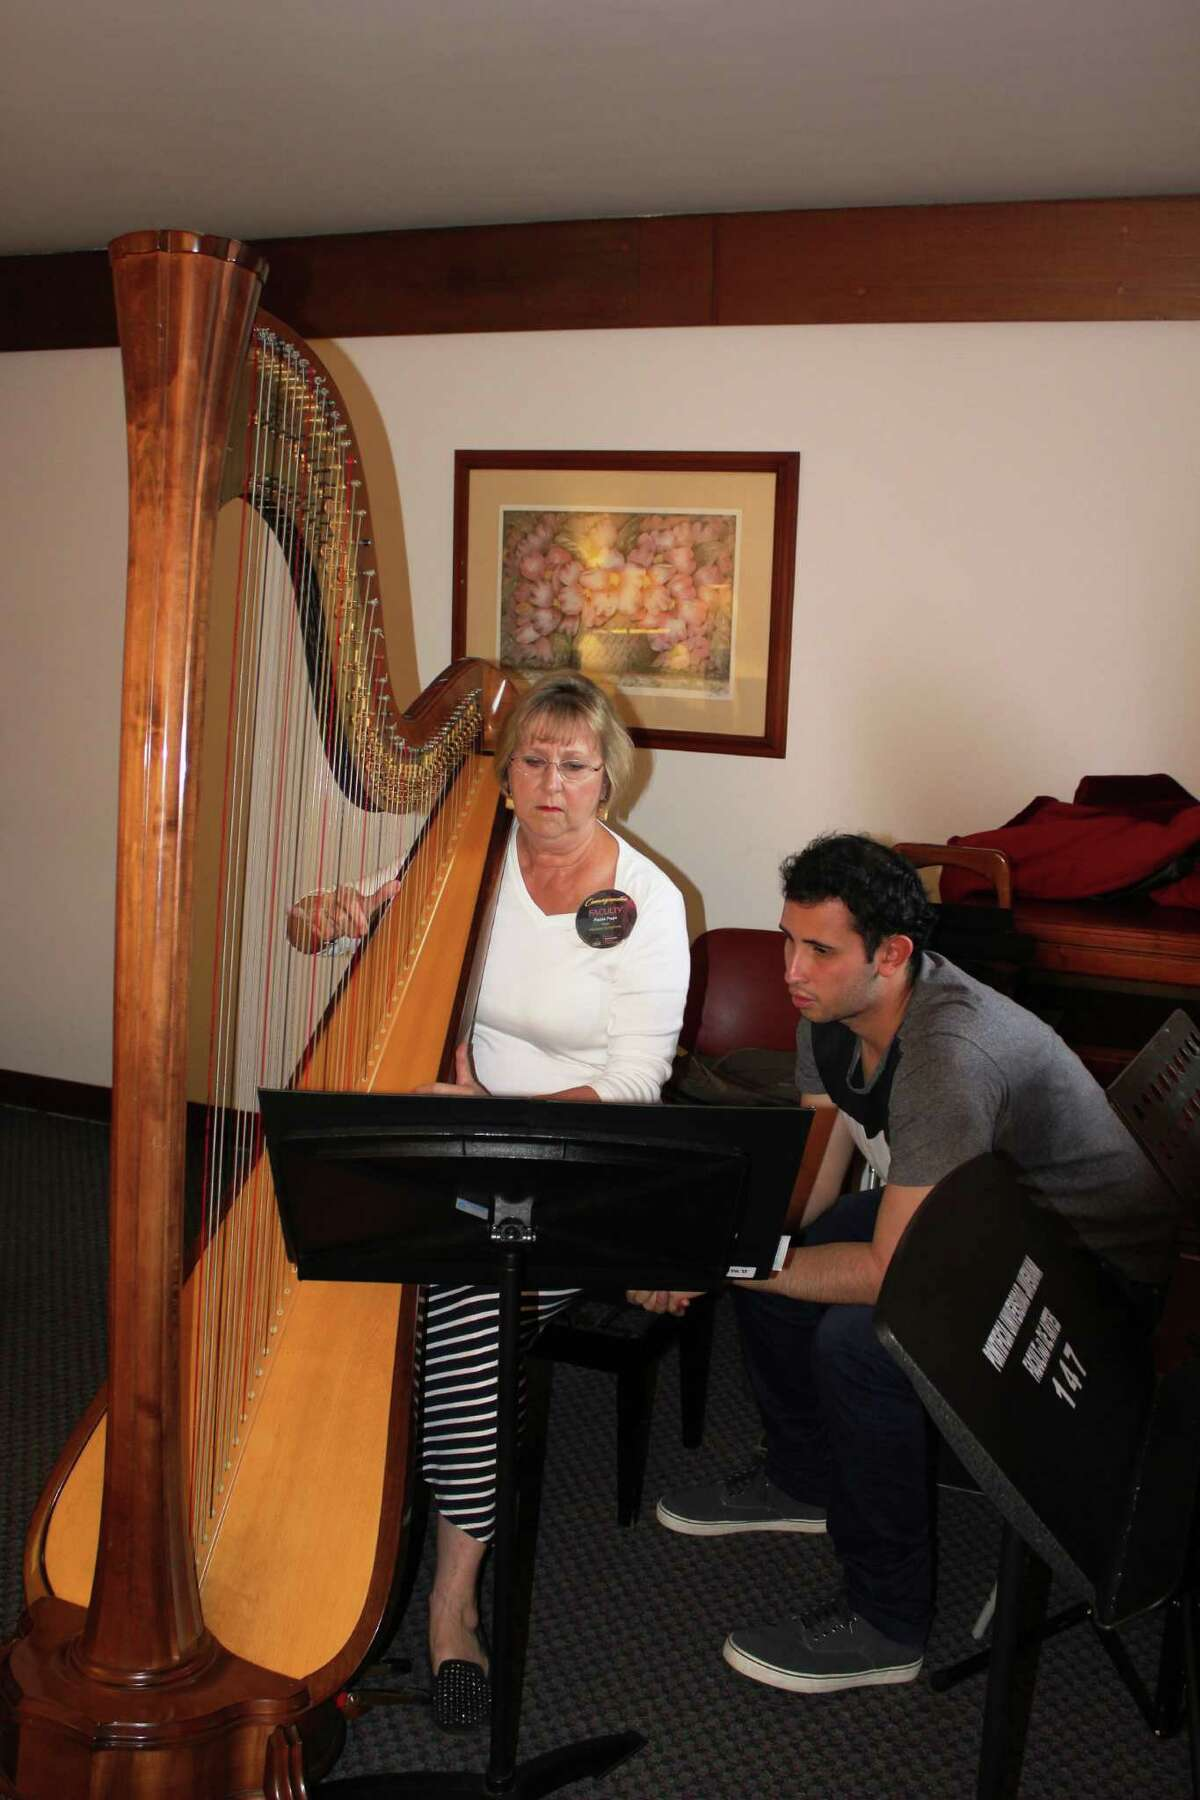 Former Houston Symphony principal harpist Paula Page works with Daniel Amezquita of the Colombian Youth Philharmonic during a weeks-long residency in Paipa, Colombia.